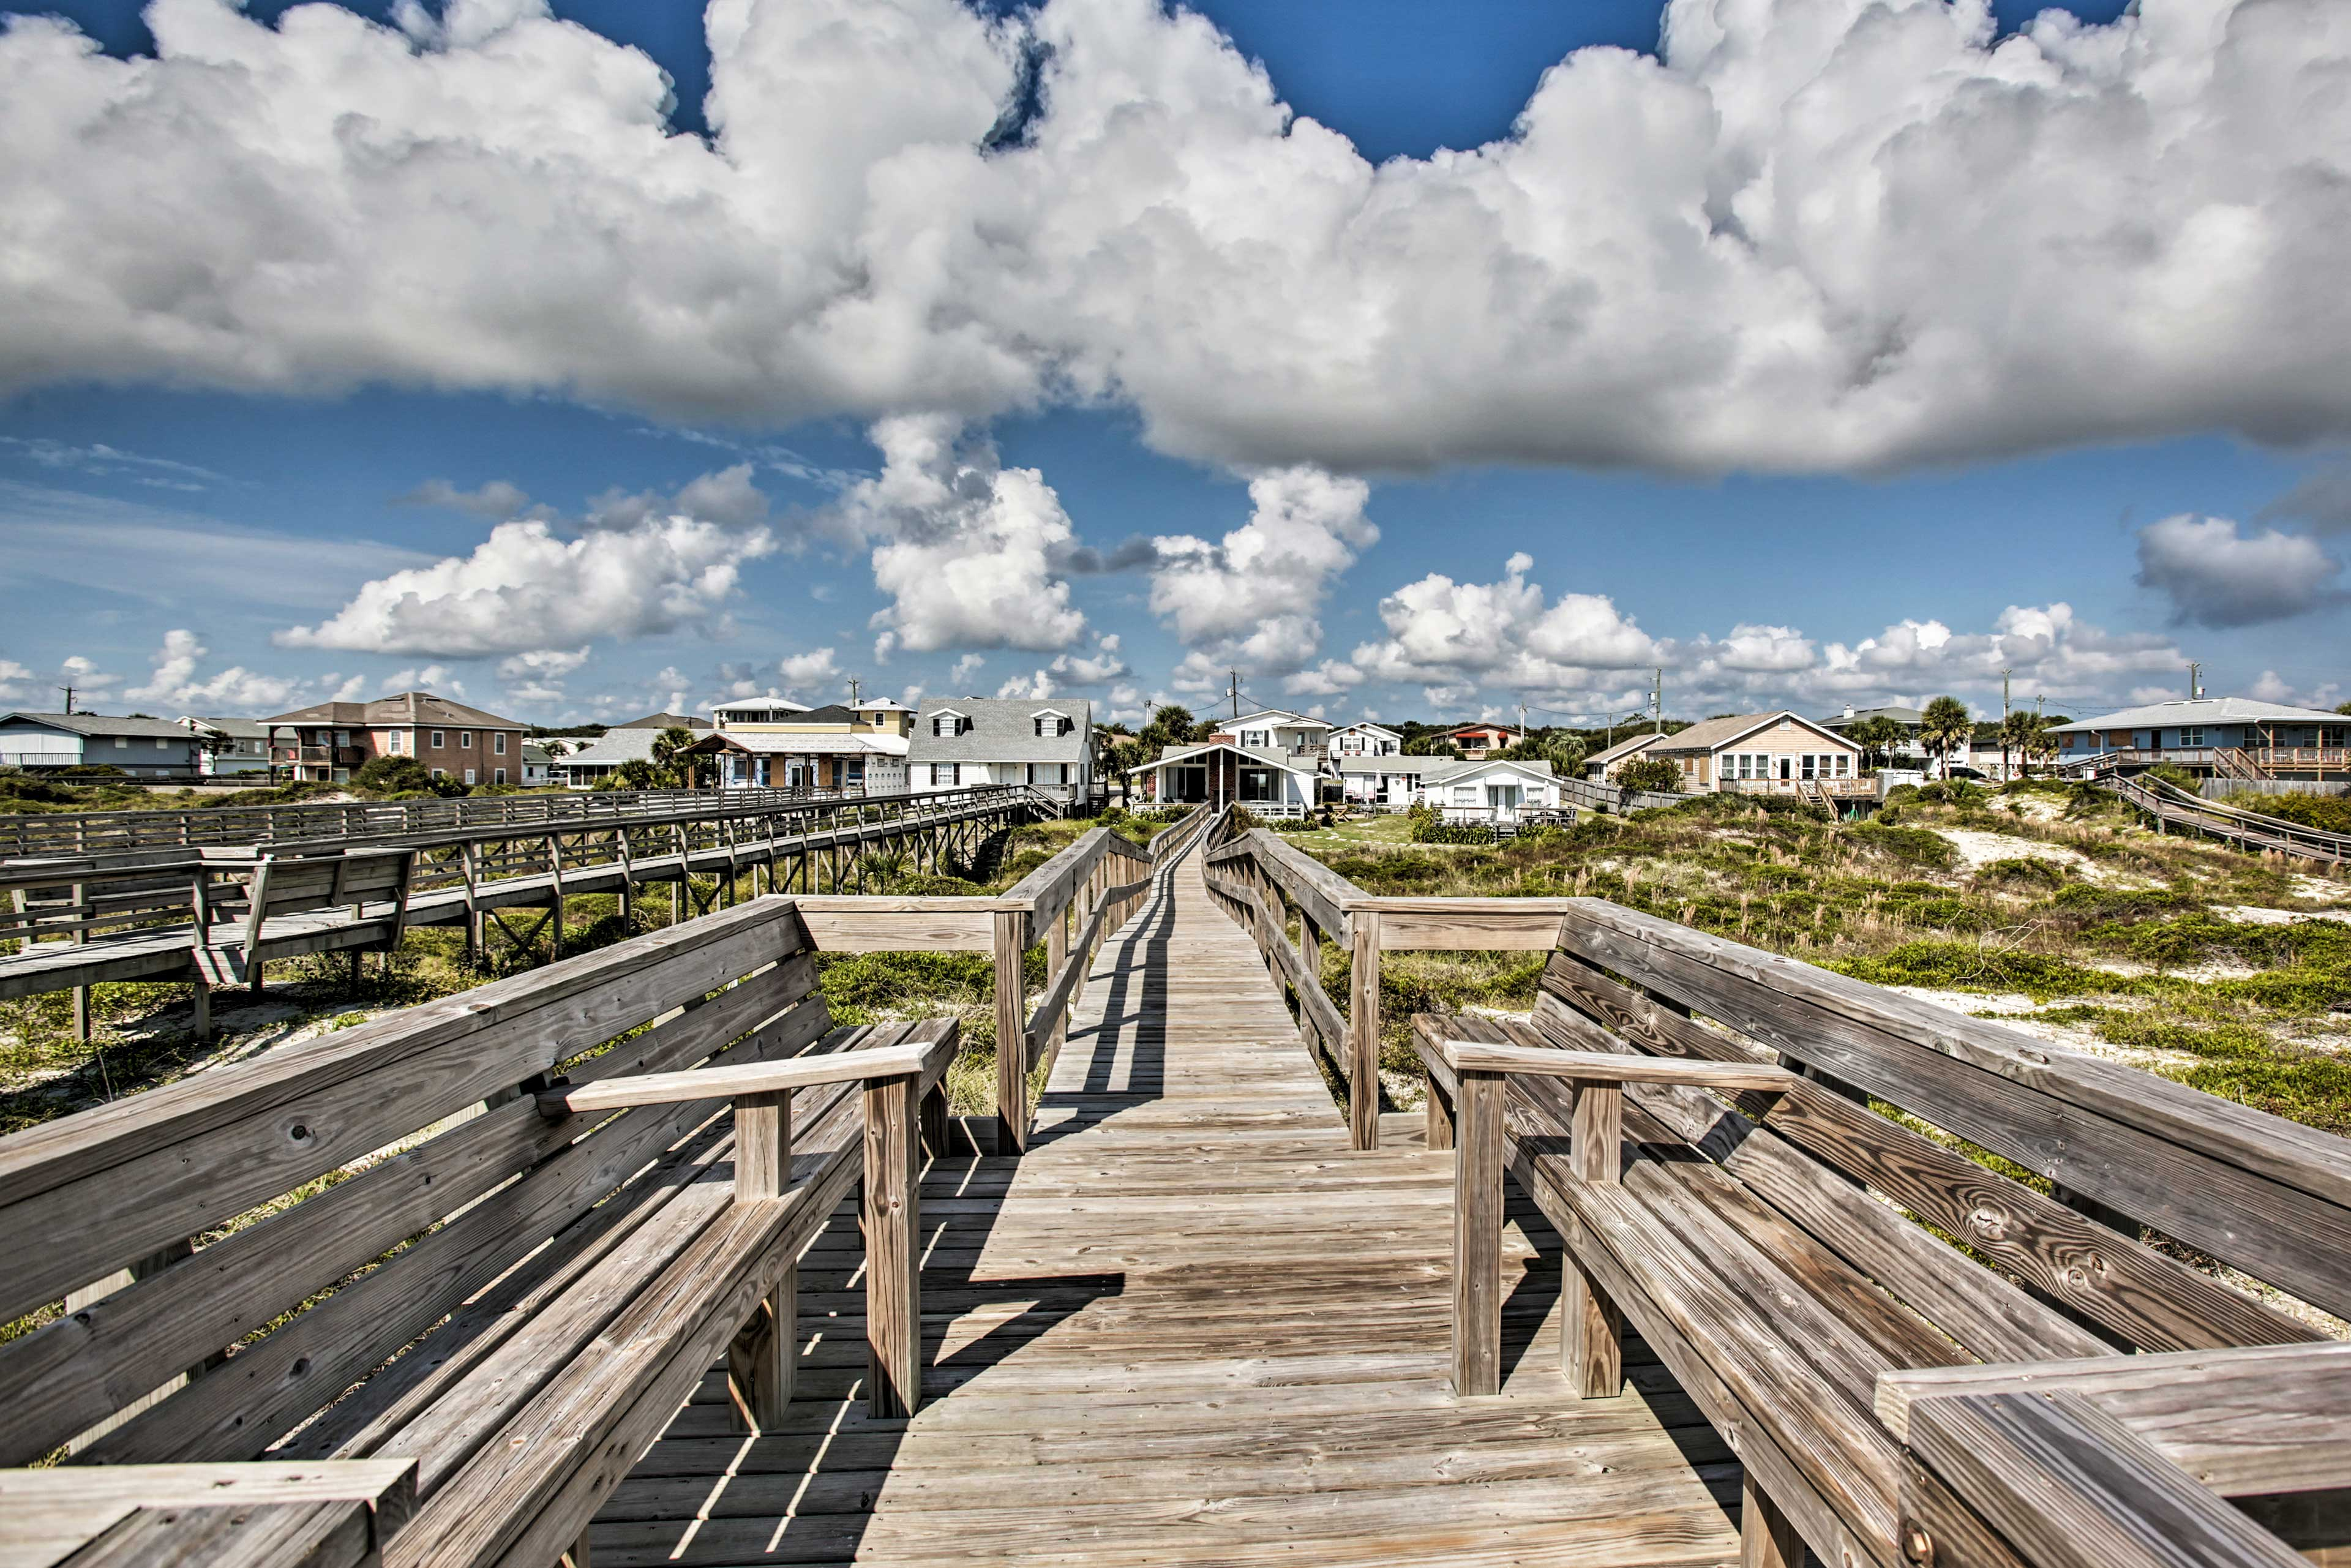 Spend the day swimming or relaxing along the peaceful Atlantic Coast!